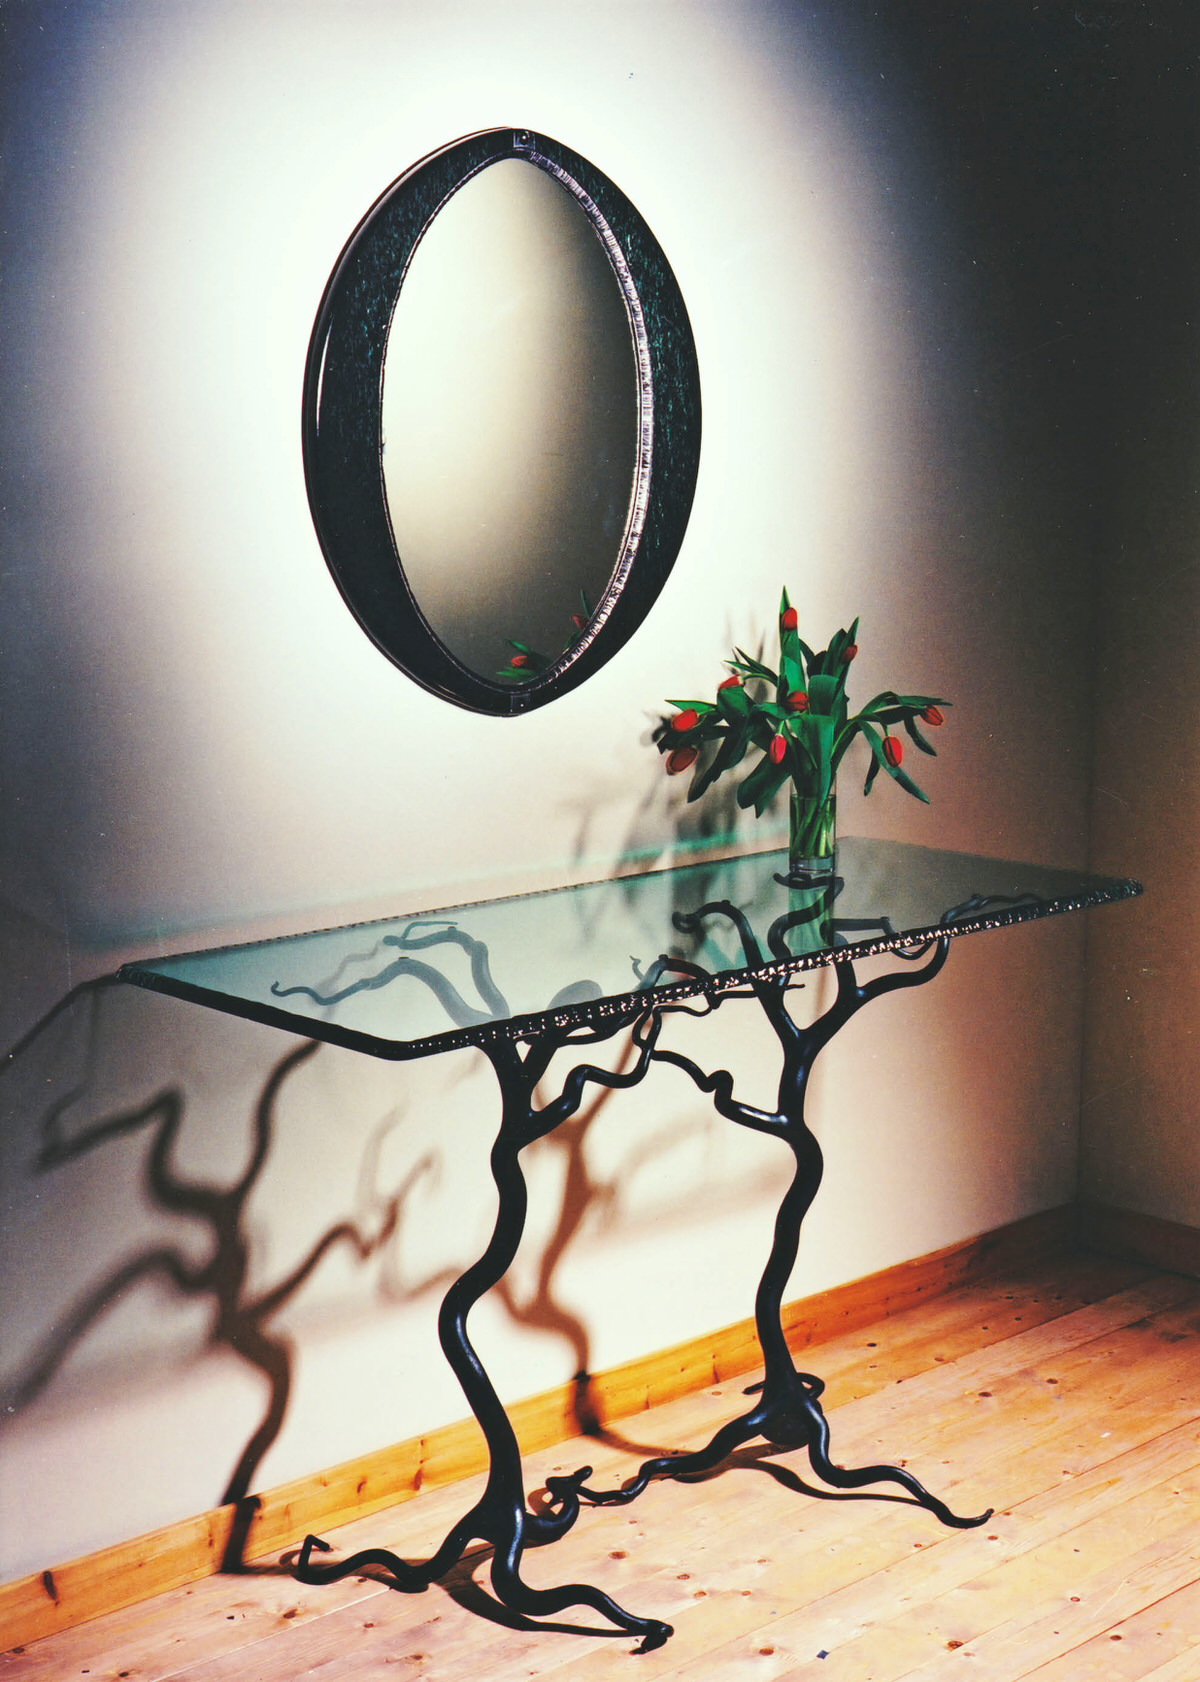 Savernake Forest Table forged steel sculptural furniture tree table by Mark Reed